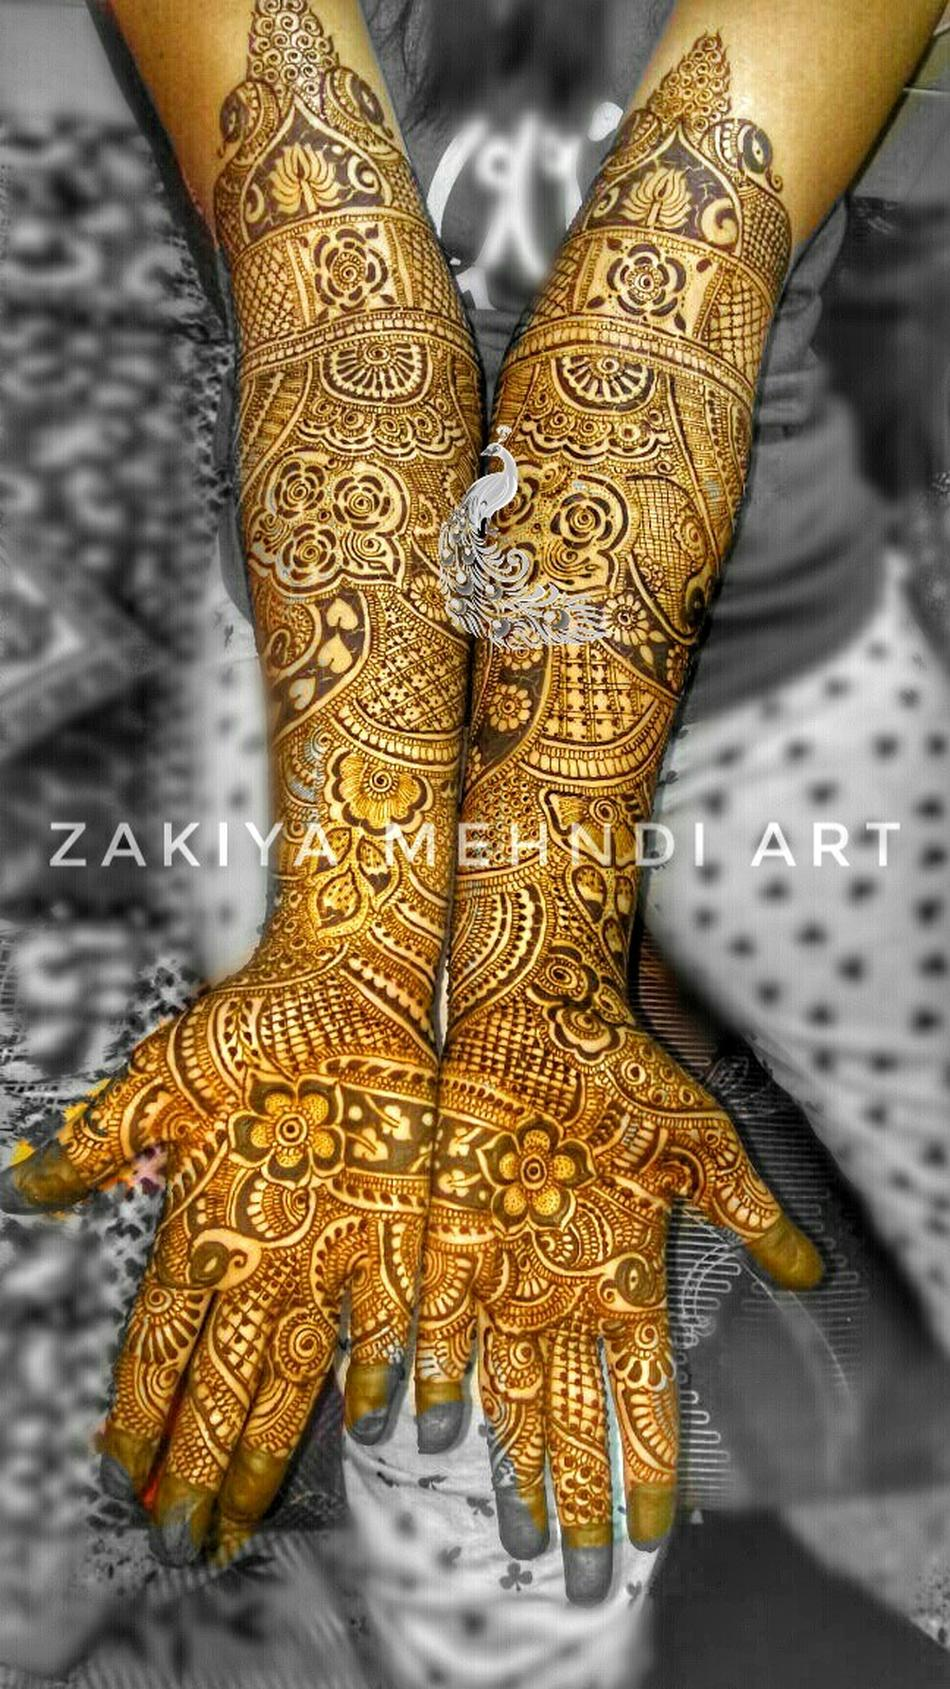 Professional Bridal Makeup: Zakiya Award Winner Professional Bridal Mehndi Artist